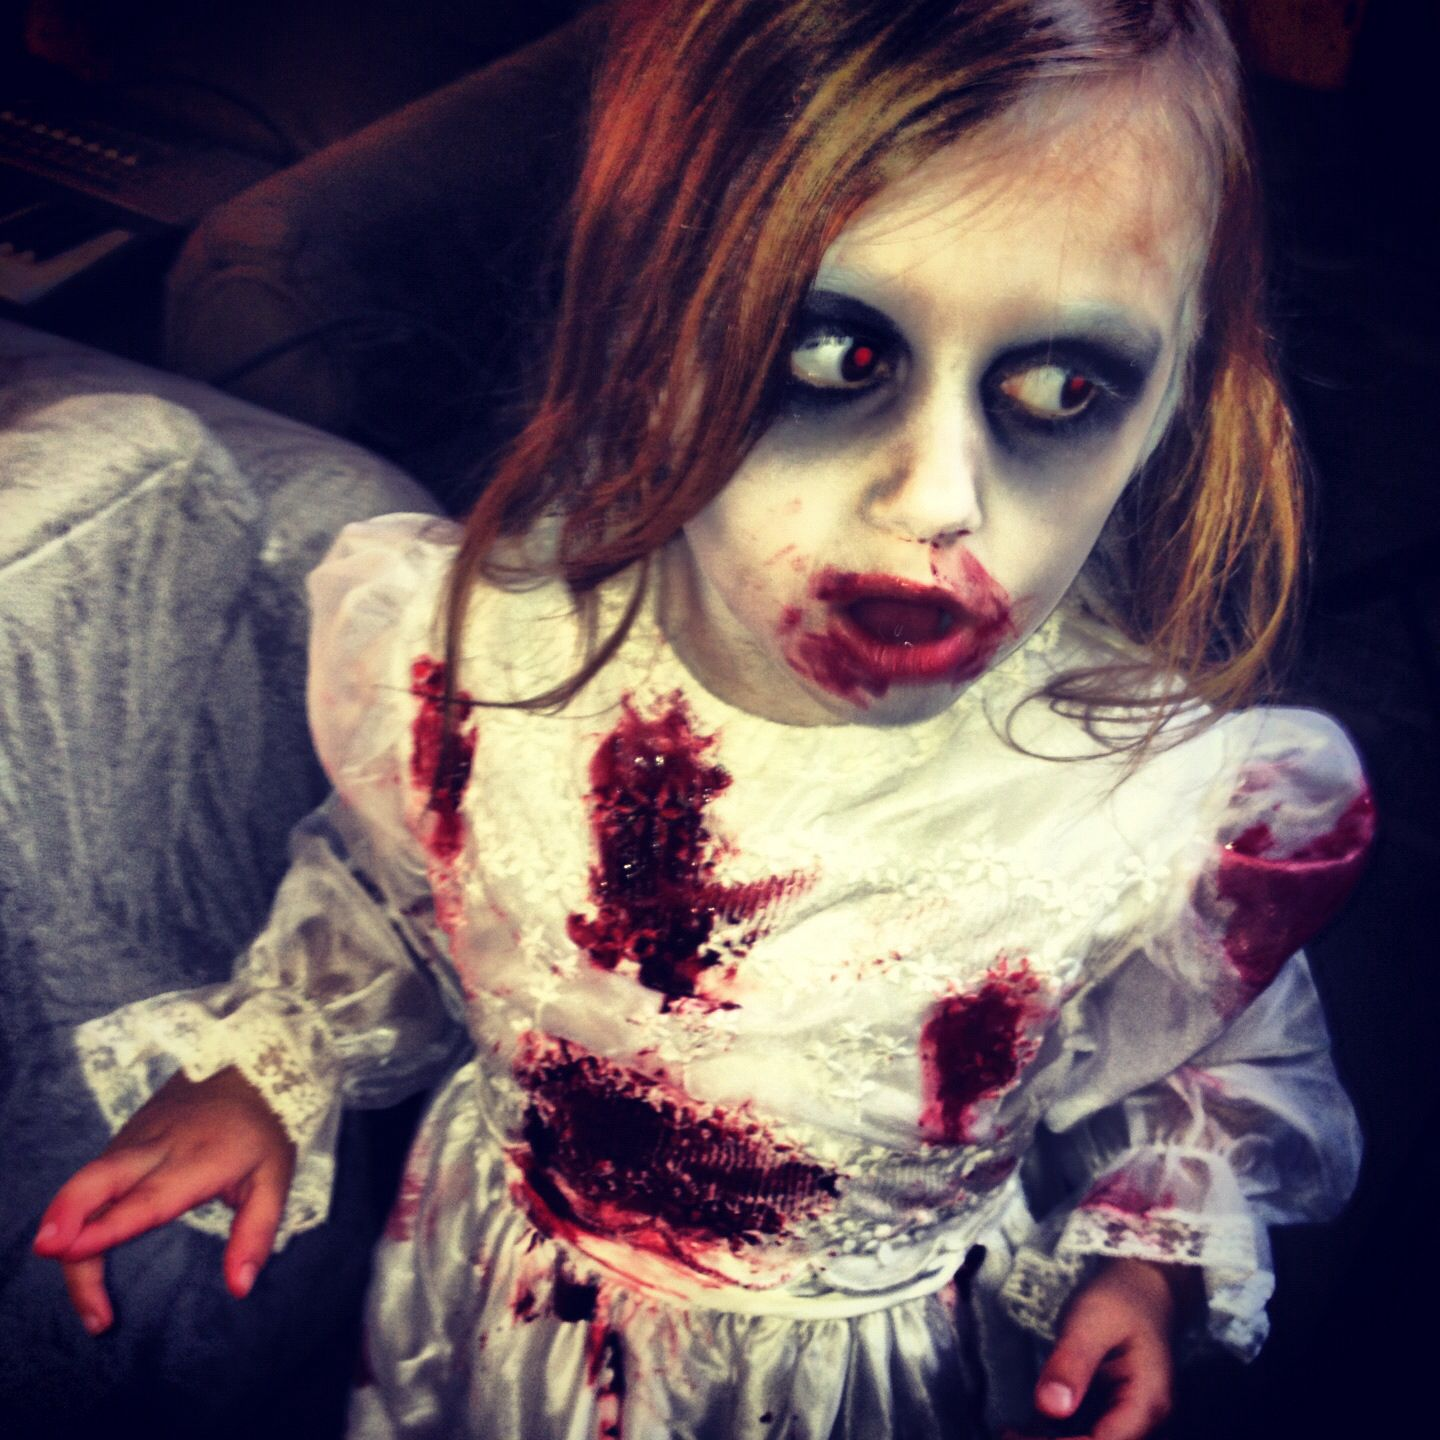 easy zombie makeup for kids - Google Search | Halloween ...